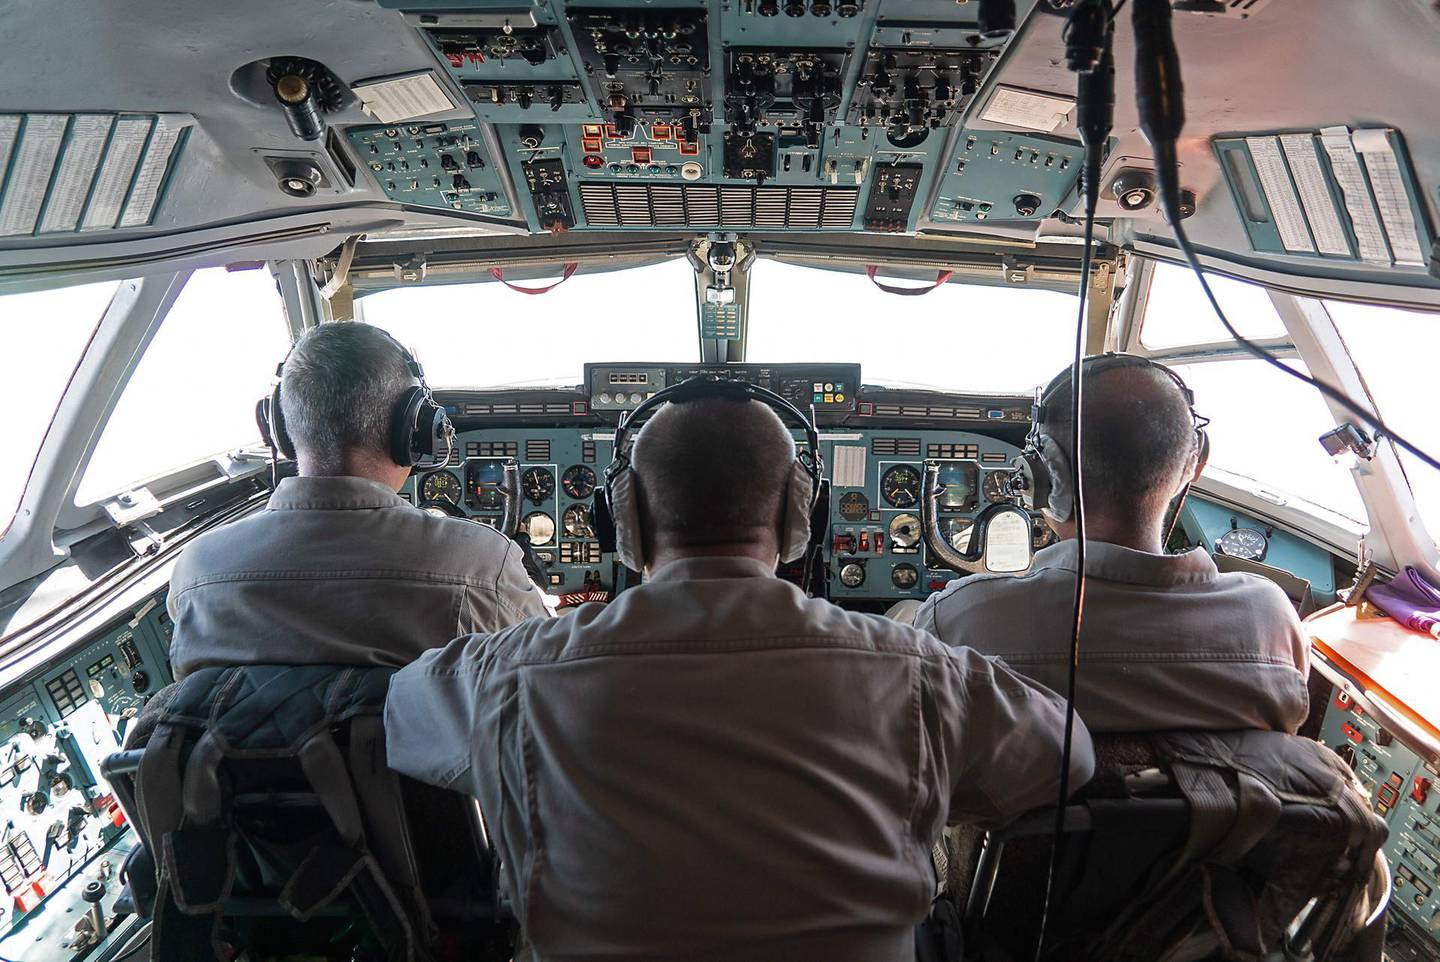 This picture taken on August 16, 2018, during a guided tour by the Russian Forces in Syria, shows the cockpit and crew members of an Antonov 72 (AN-72) Russian military aircraft during a flight between Khmeimim and Aleppo. (Photo by Andrei BORODULIN / AFP)